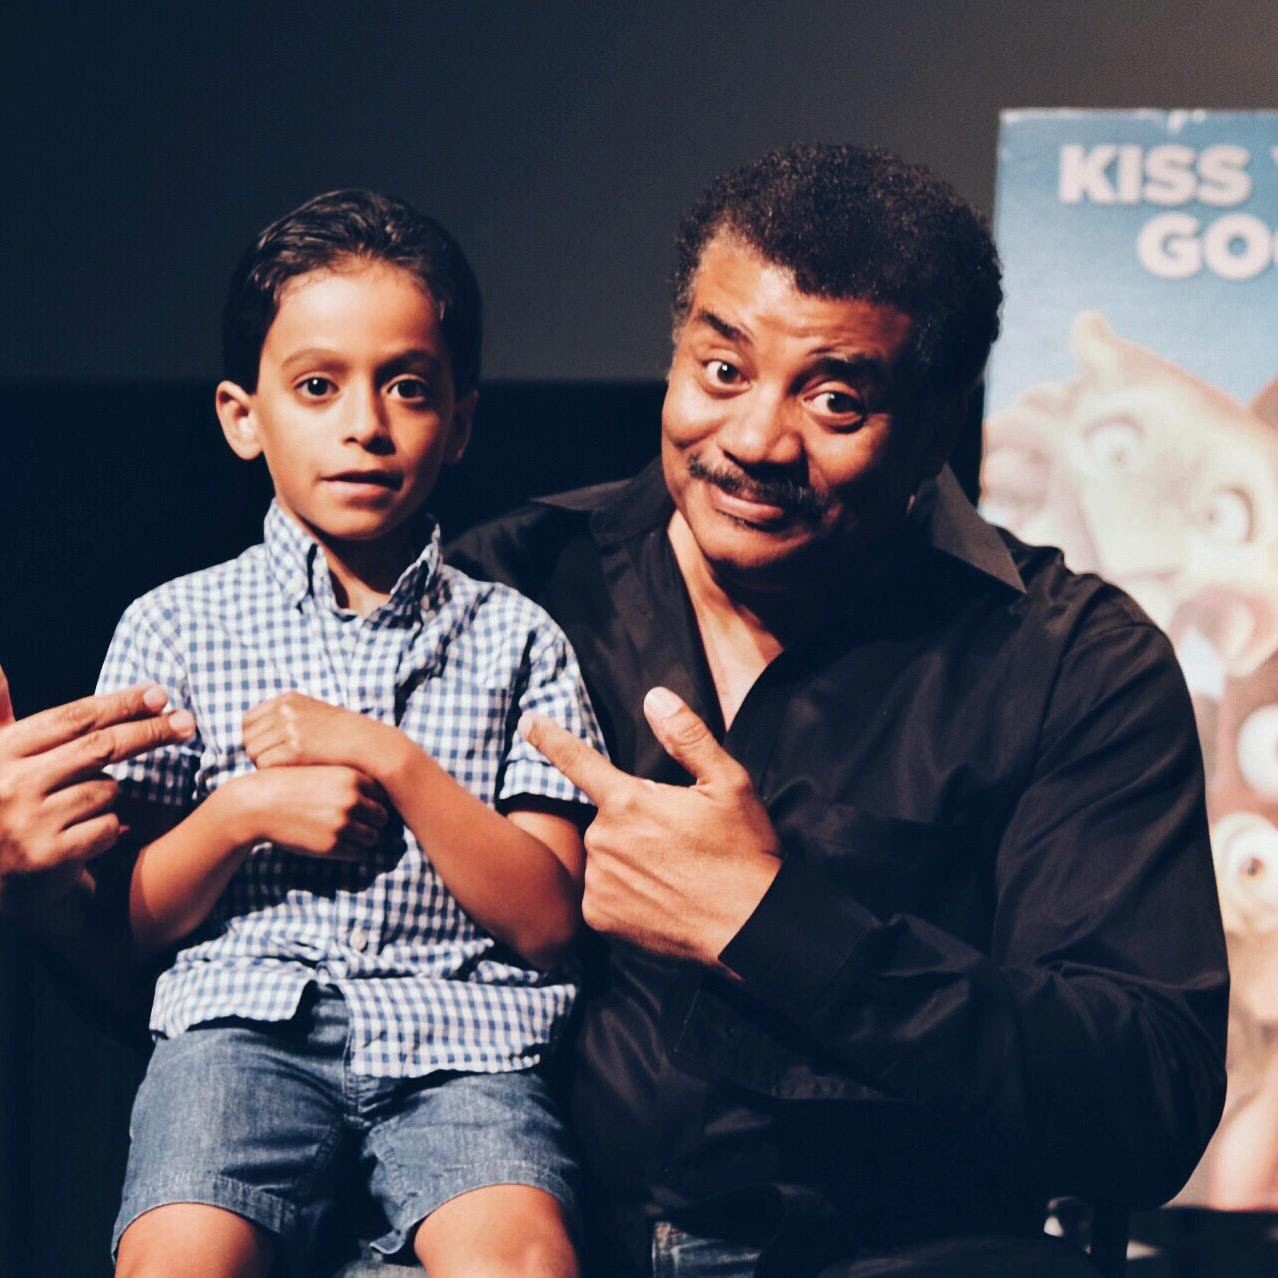 Ice Age with Neil deGrasse Tyson